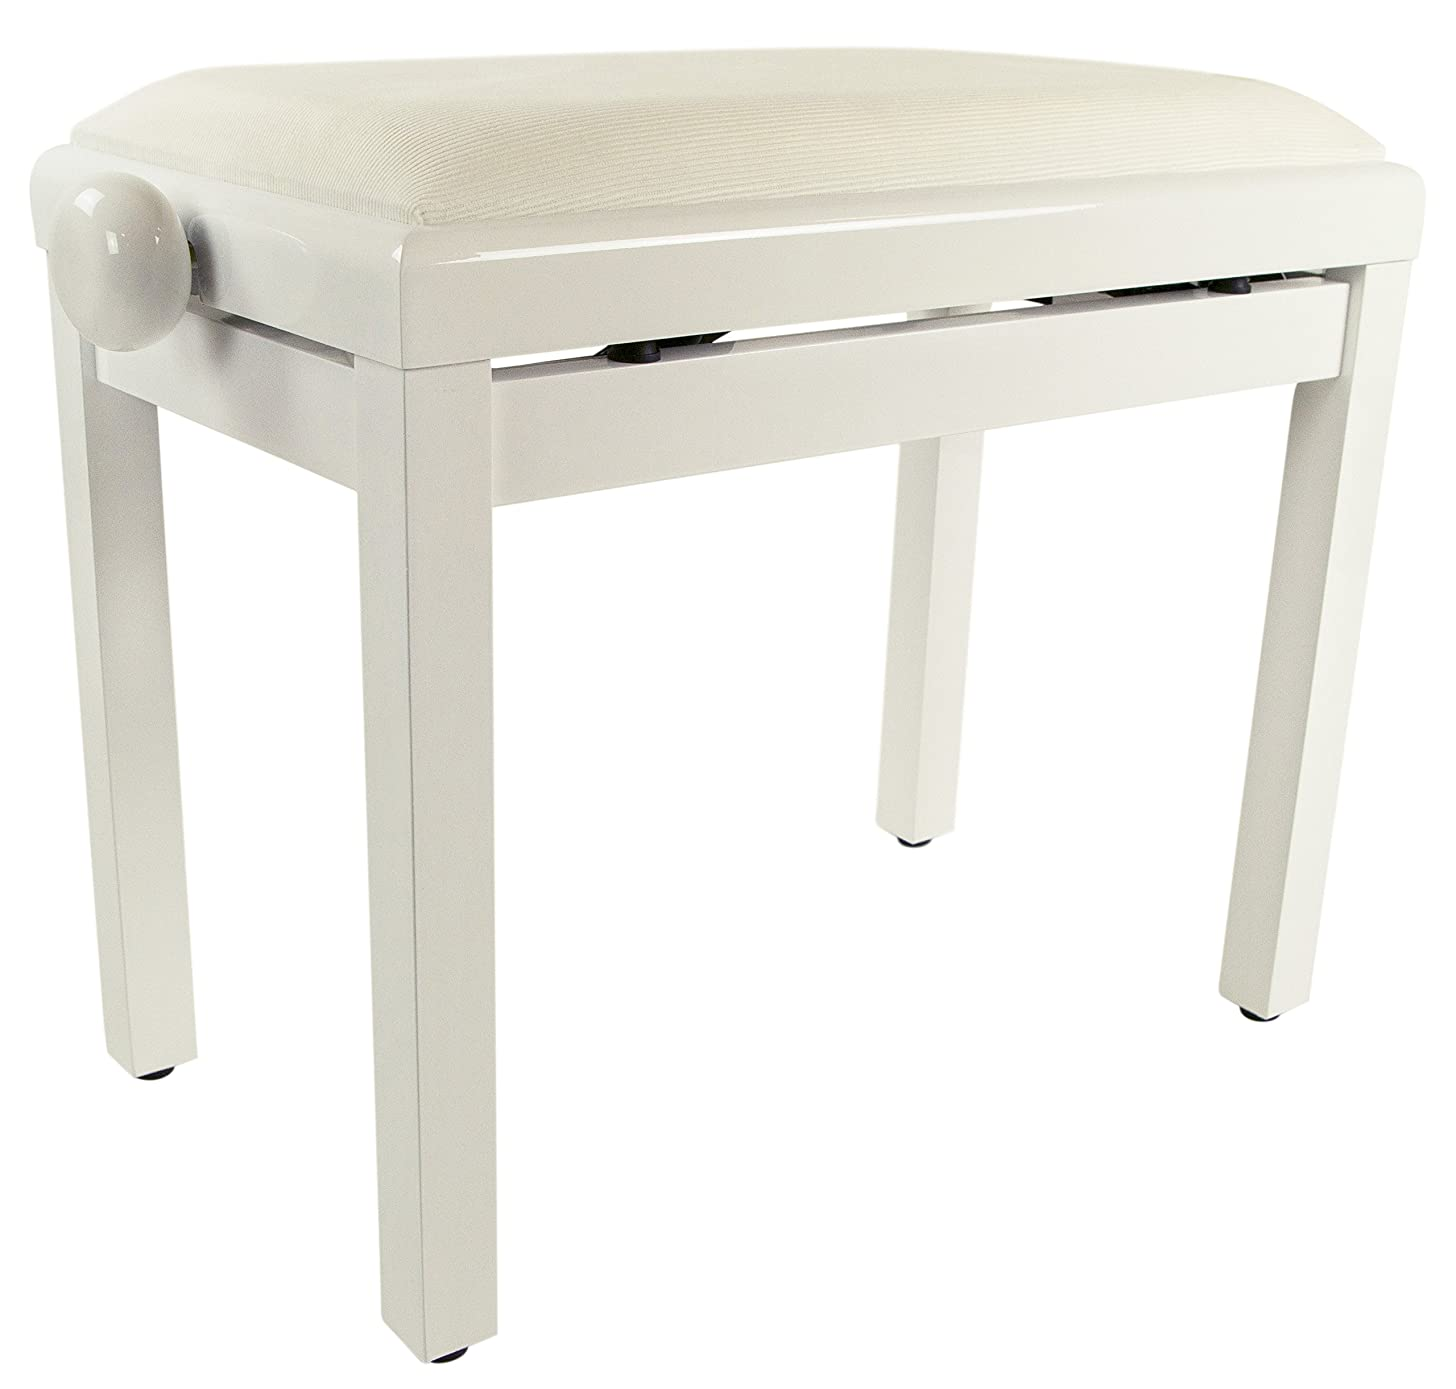 Gearlux Adjustable Piano Bench with Velvet Top - White Gloss